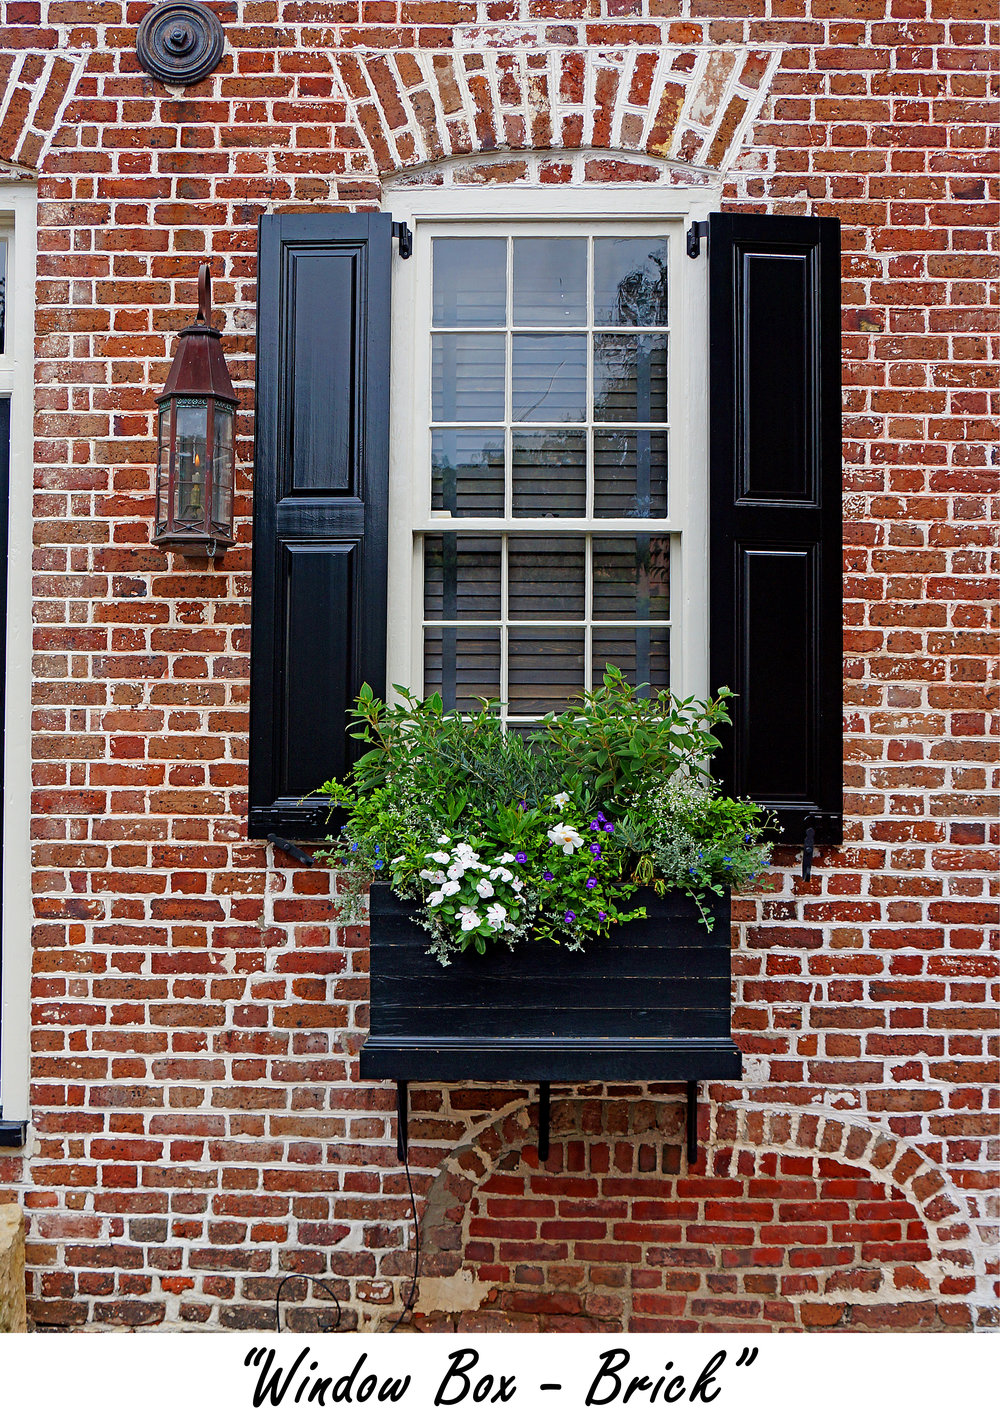 windowbox Brick.jpg